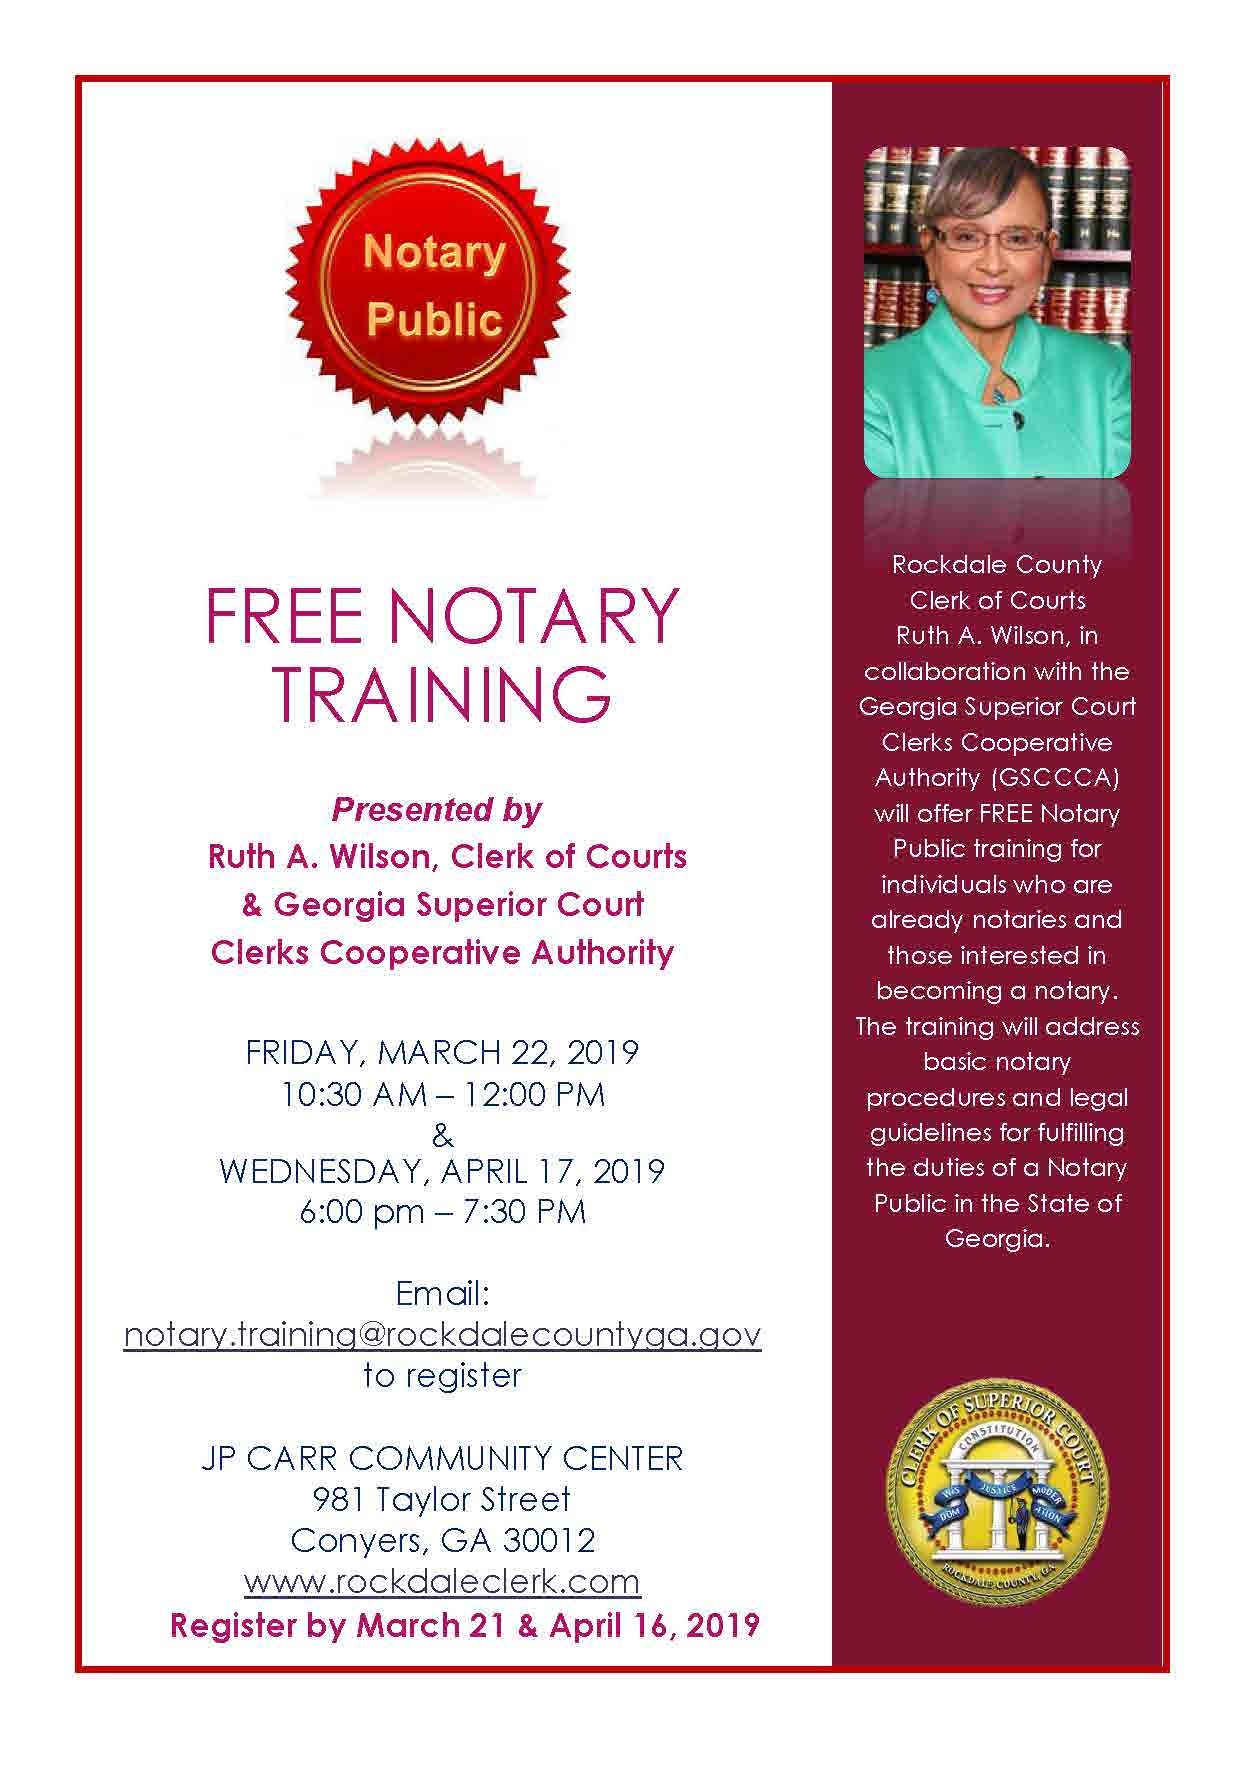 Free Notary Training - Presented by Ruth A. Wilson, Clerk of Courts & Georgia Superior Court Clerks Cooperative Authority @ J.P. Carr Community Center